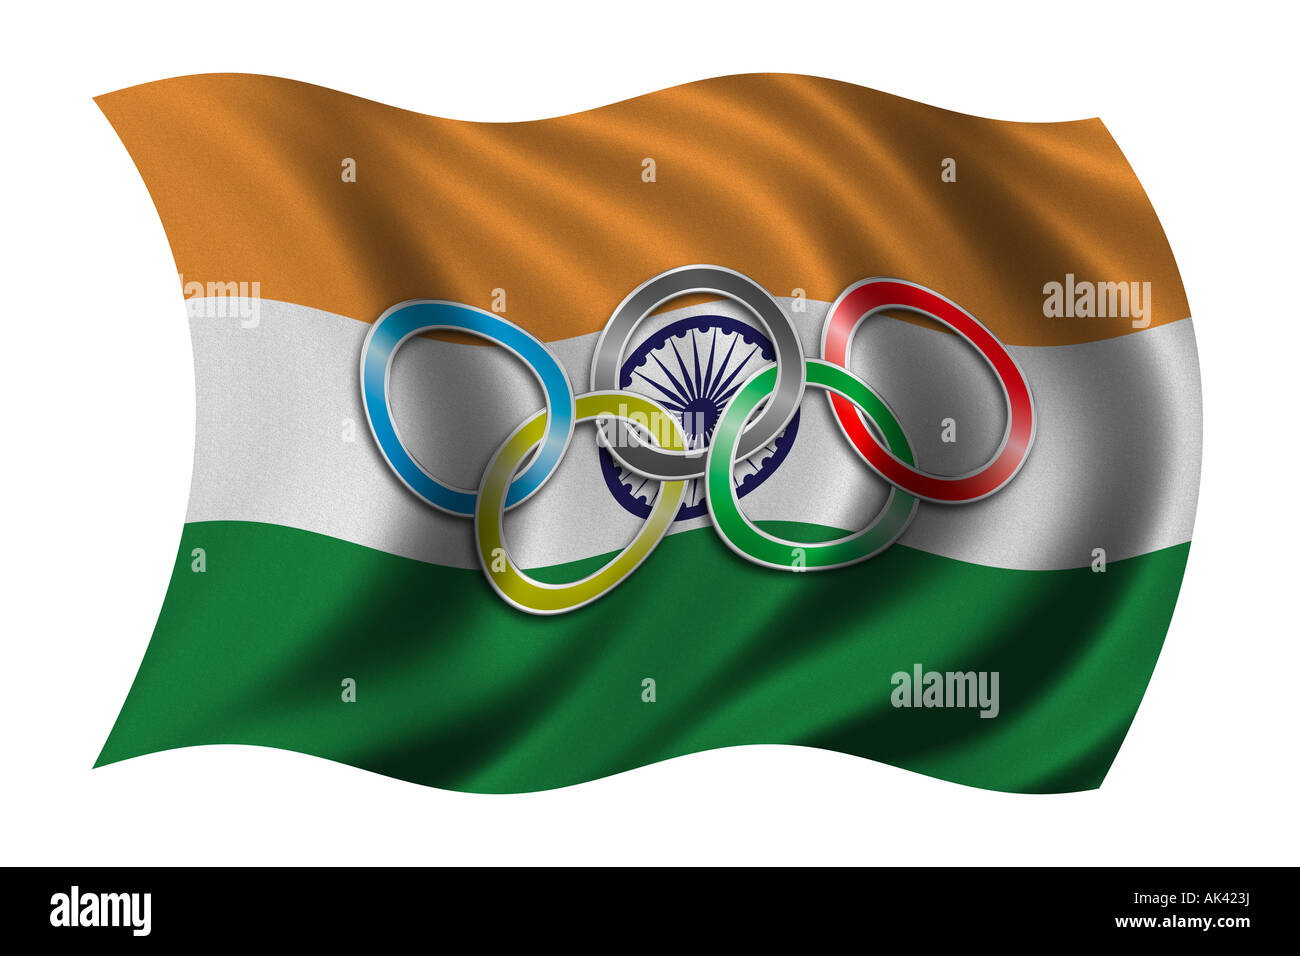 Uncategorized Olympic Symbol flag of india with olympic symbol stock photo royalty free image symbol